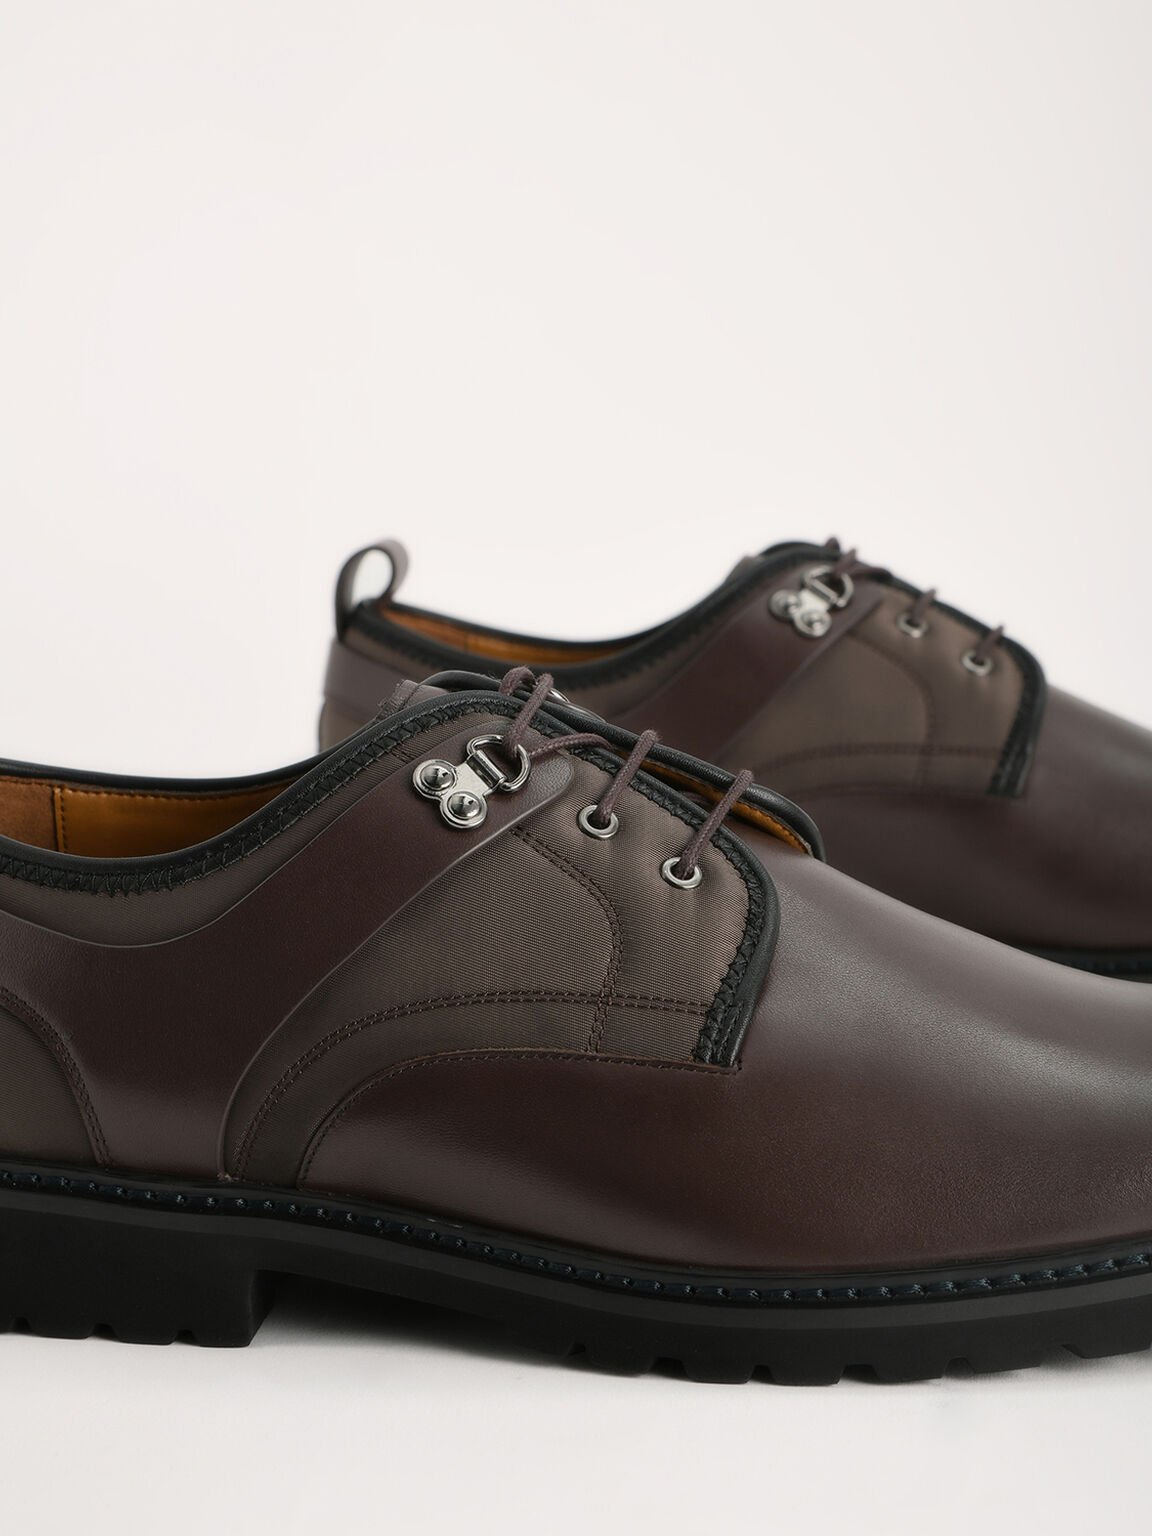 Boxed Calf Leather Derby Shoes, Dark Brown, hi-res